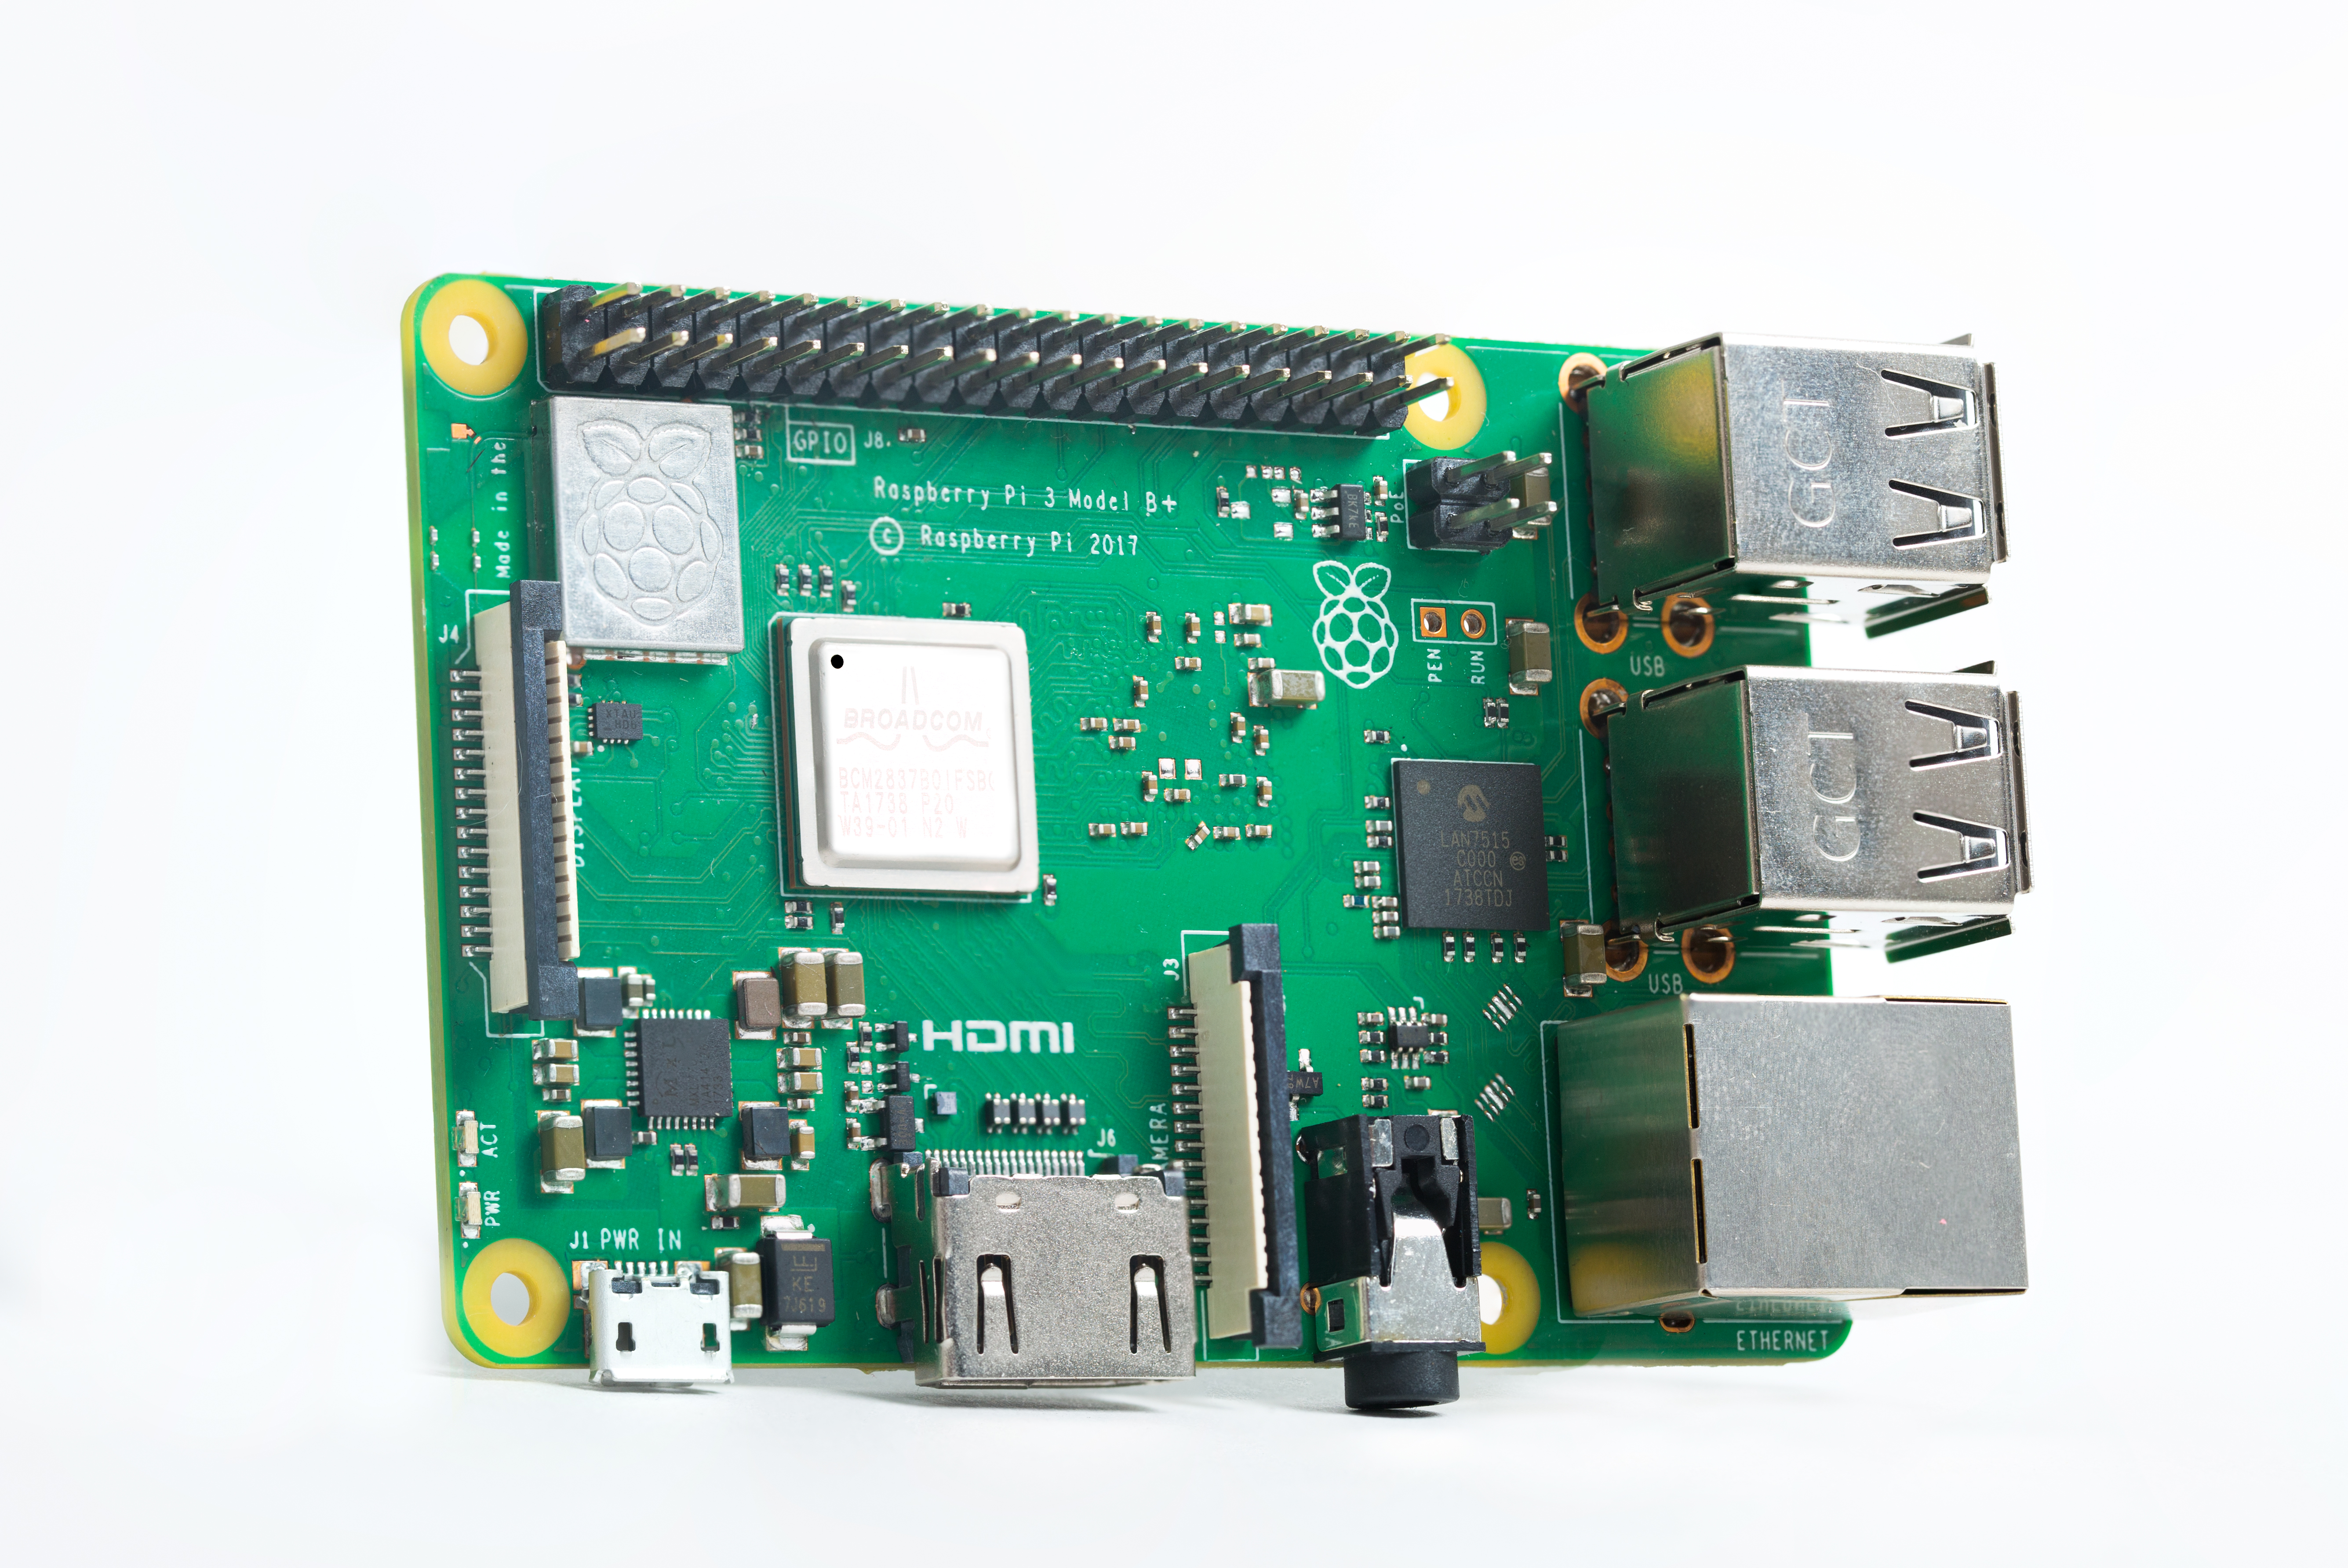 Raspberry Pi 3 Model B+, with custome power supply chip